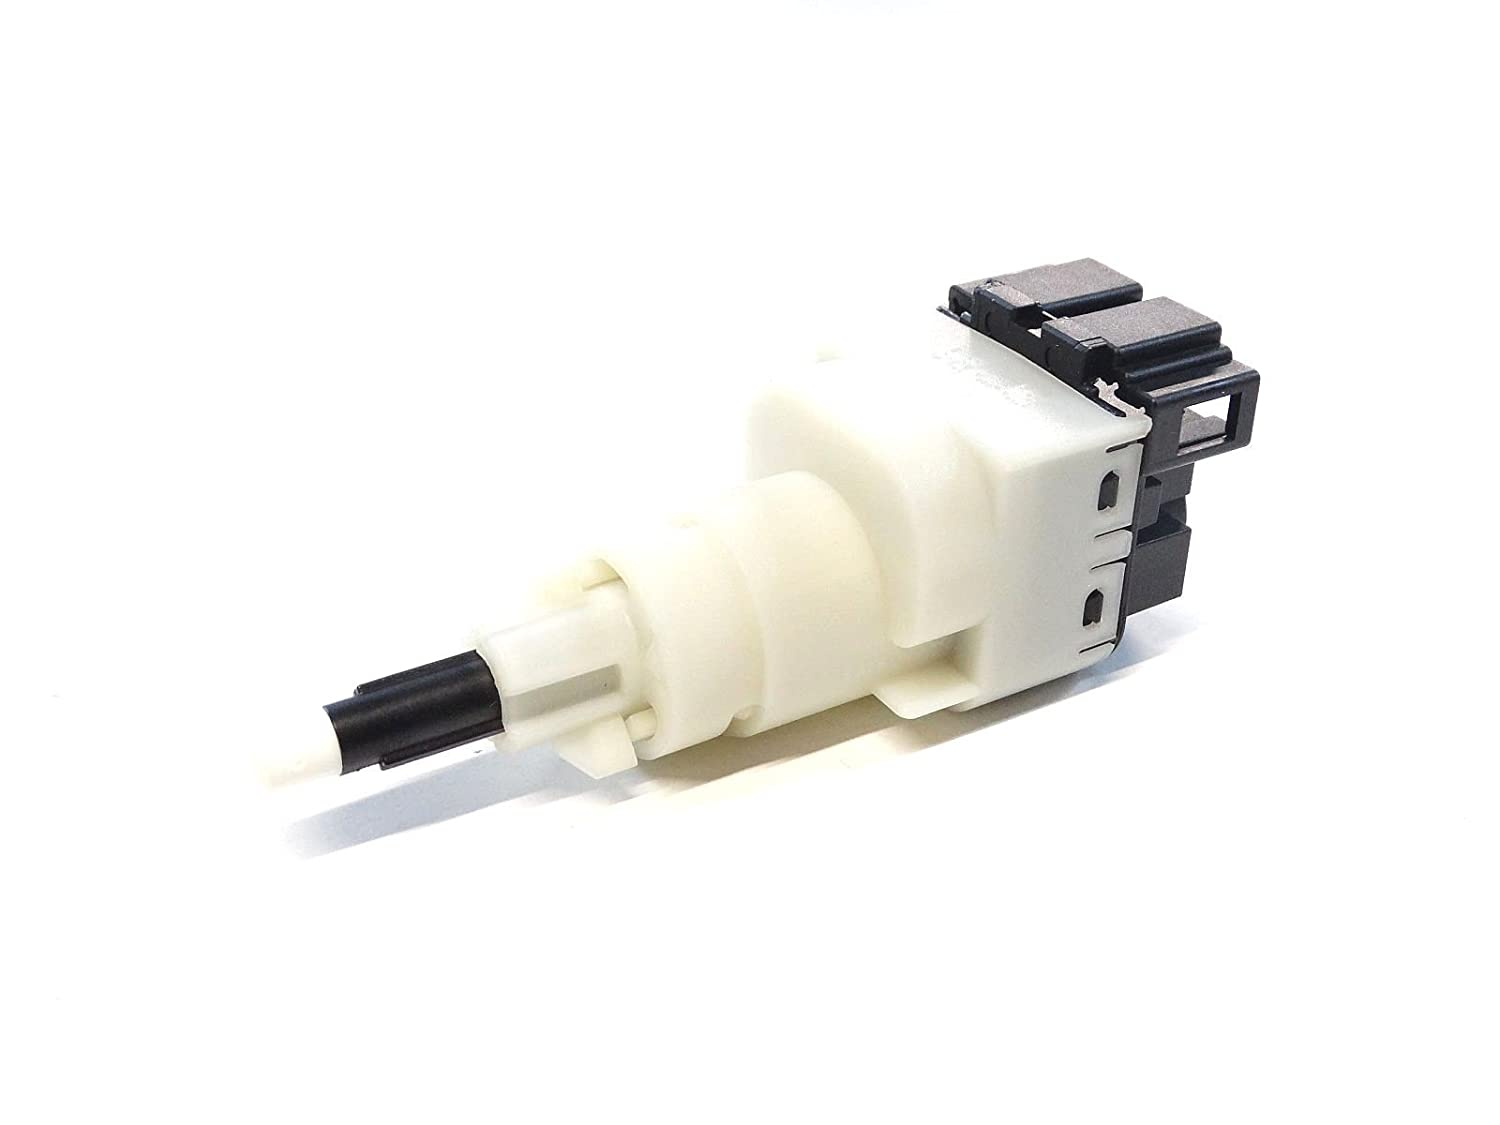 Original Audi A4 8E B6 B7 Interruptor de Embrague Interruptor para embrague 7H0927189: Amazon.es: Coche y moto